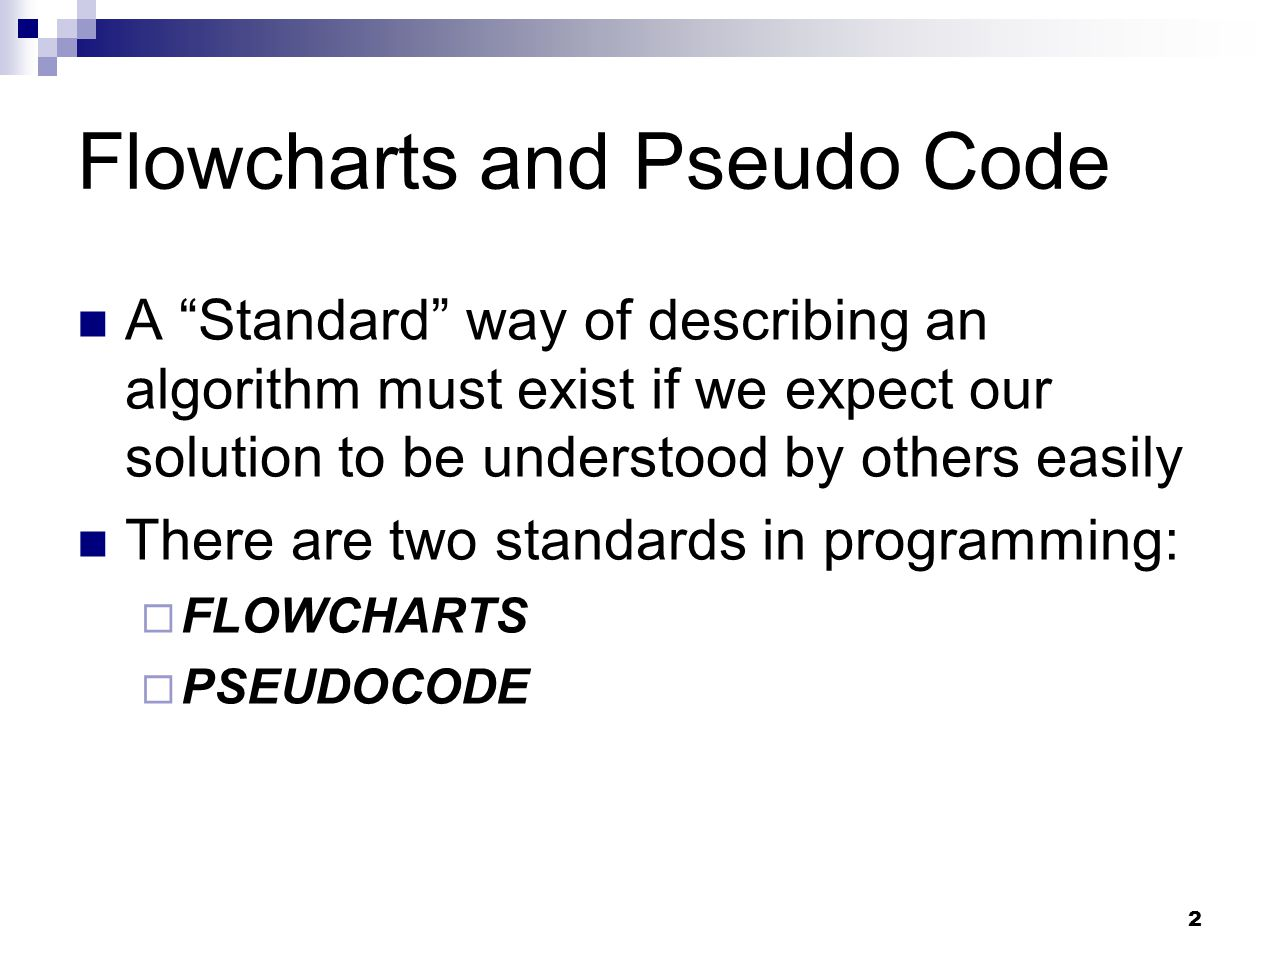 Flowcharts and Pseudo Code